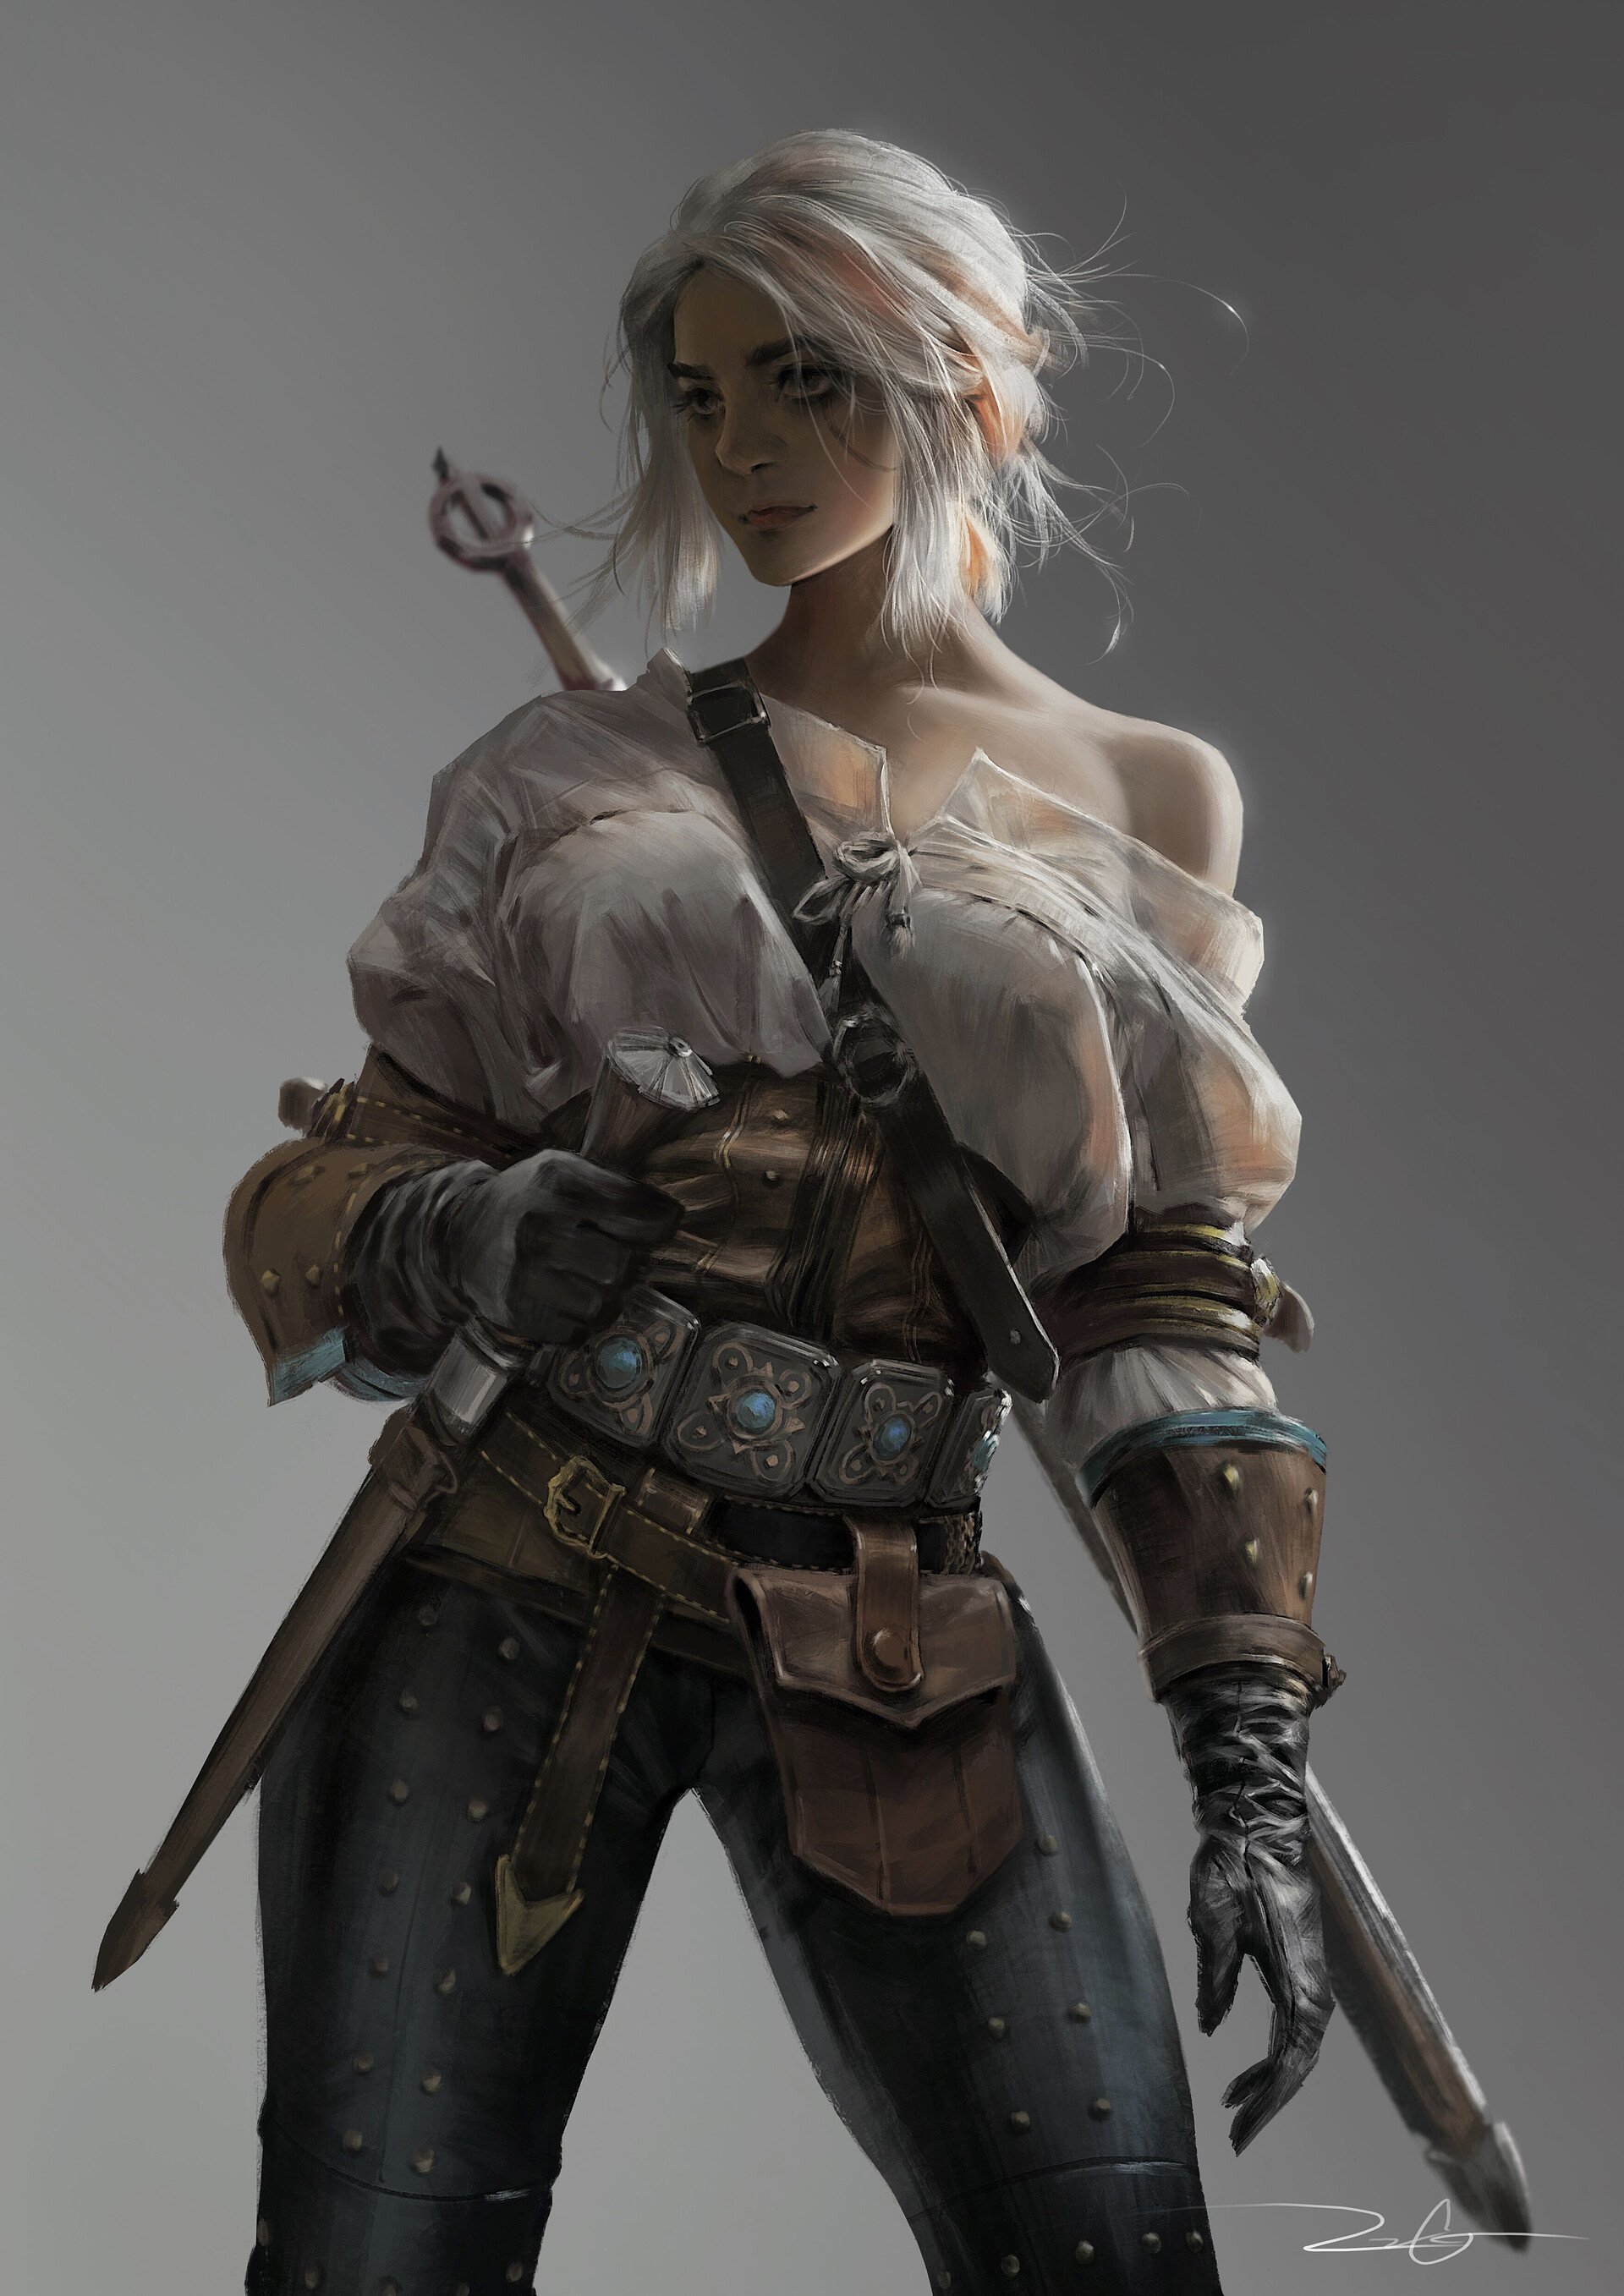 Vinci R Video Game Girls Video Game Characters White Hair Blonde Women The Witcher 3 The Witcher 3 W 1920x2715